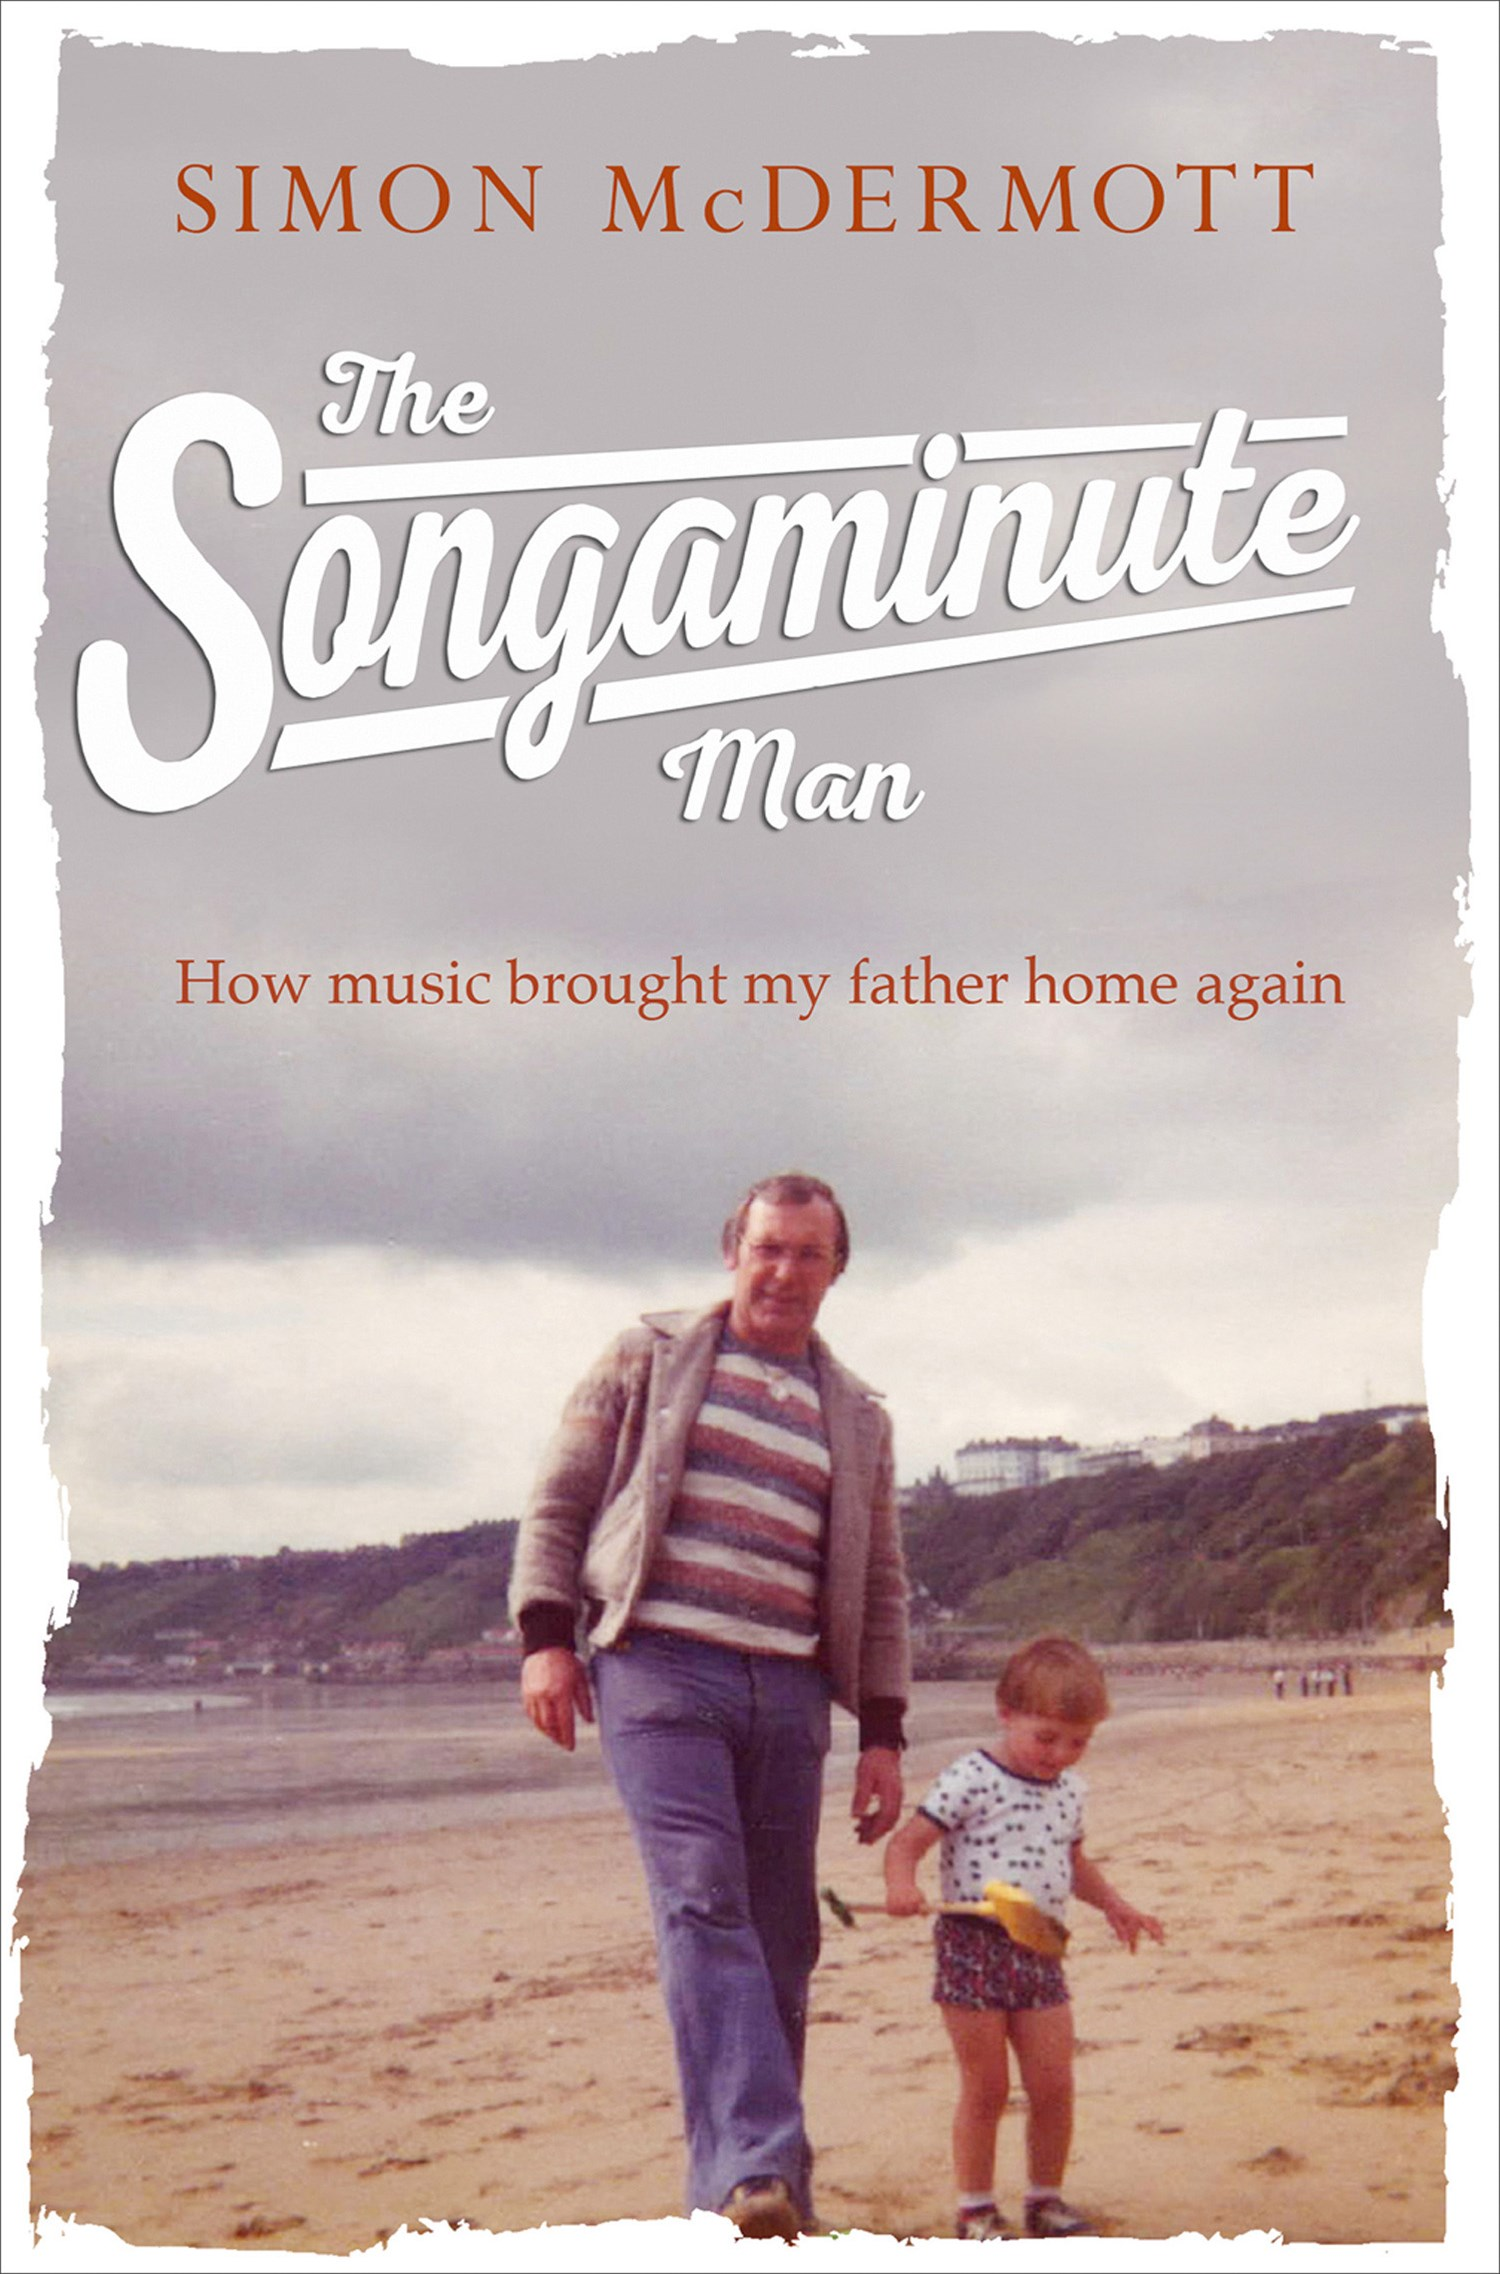 Songaminute Man